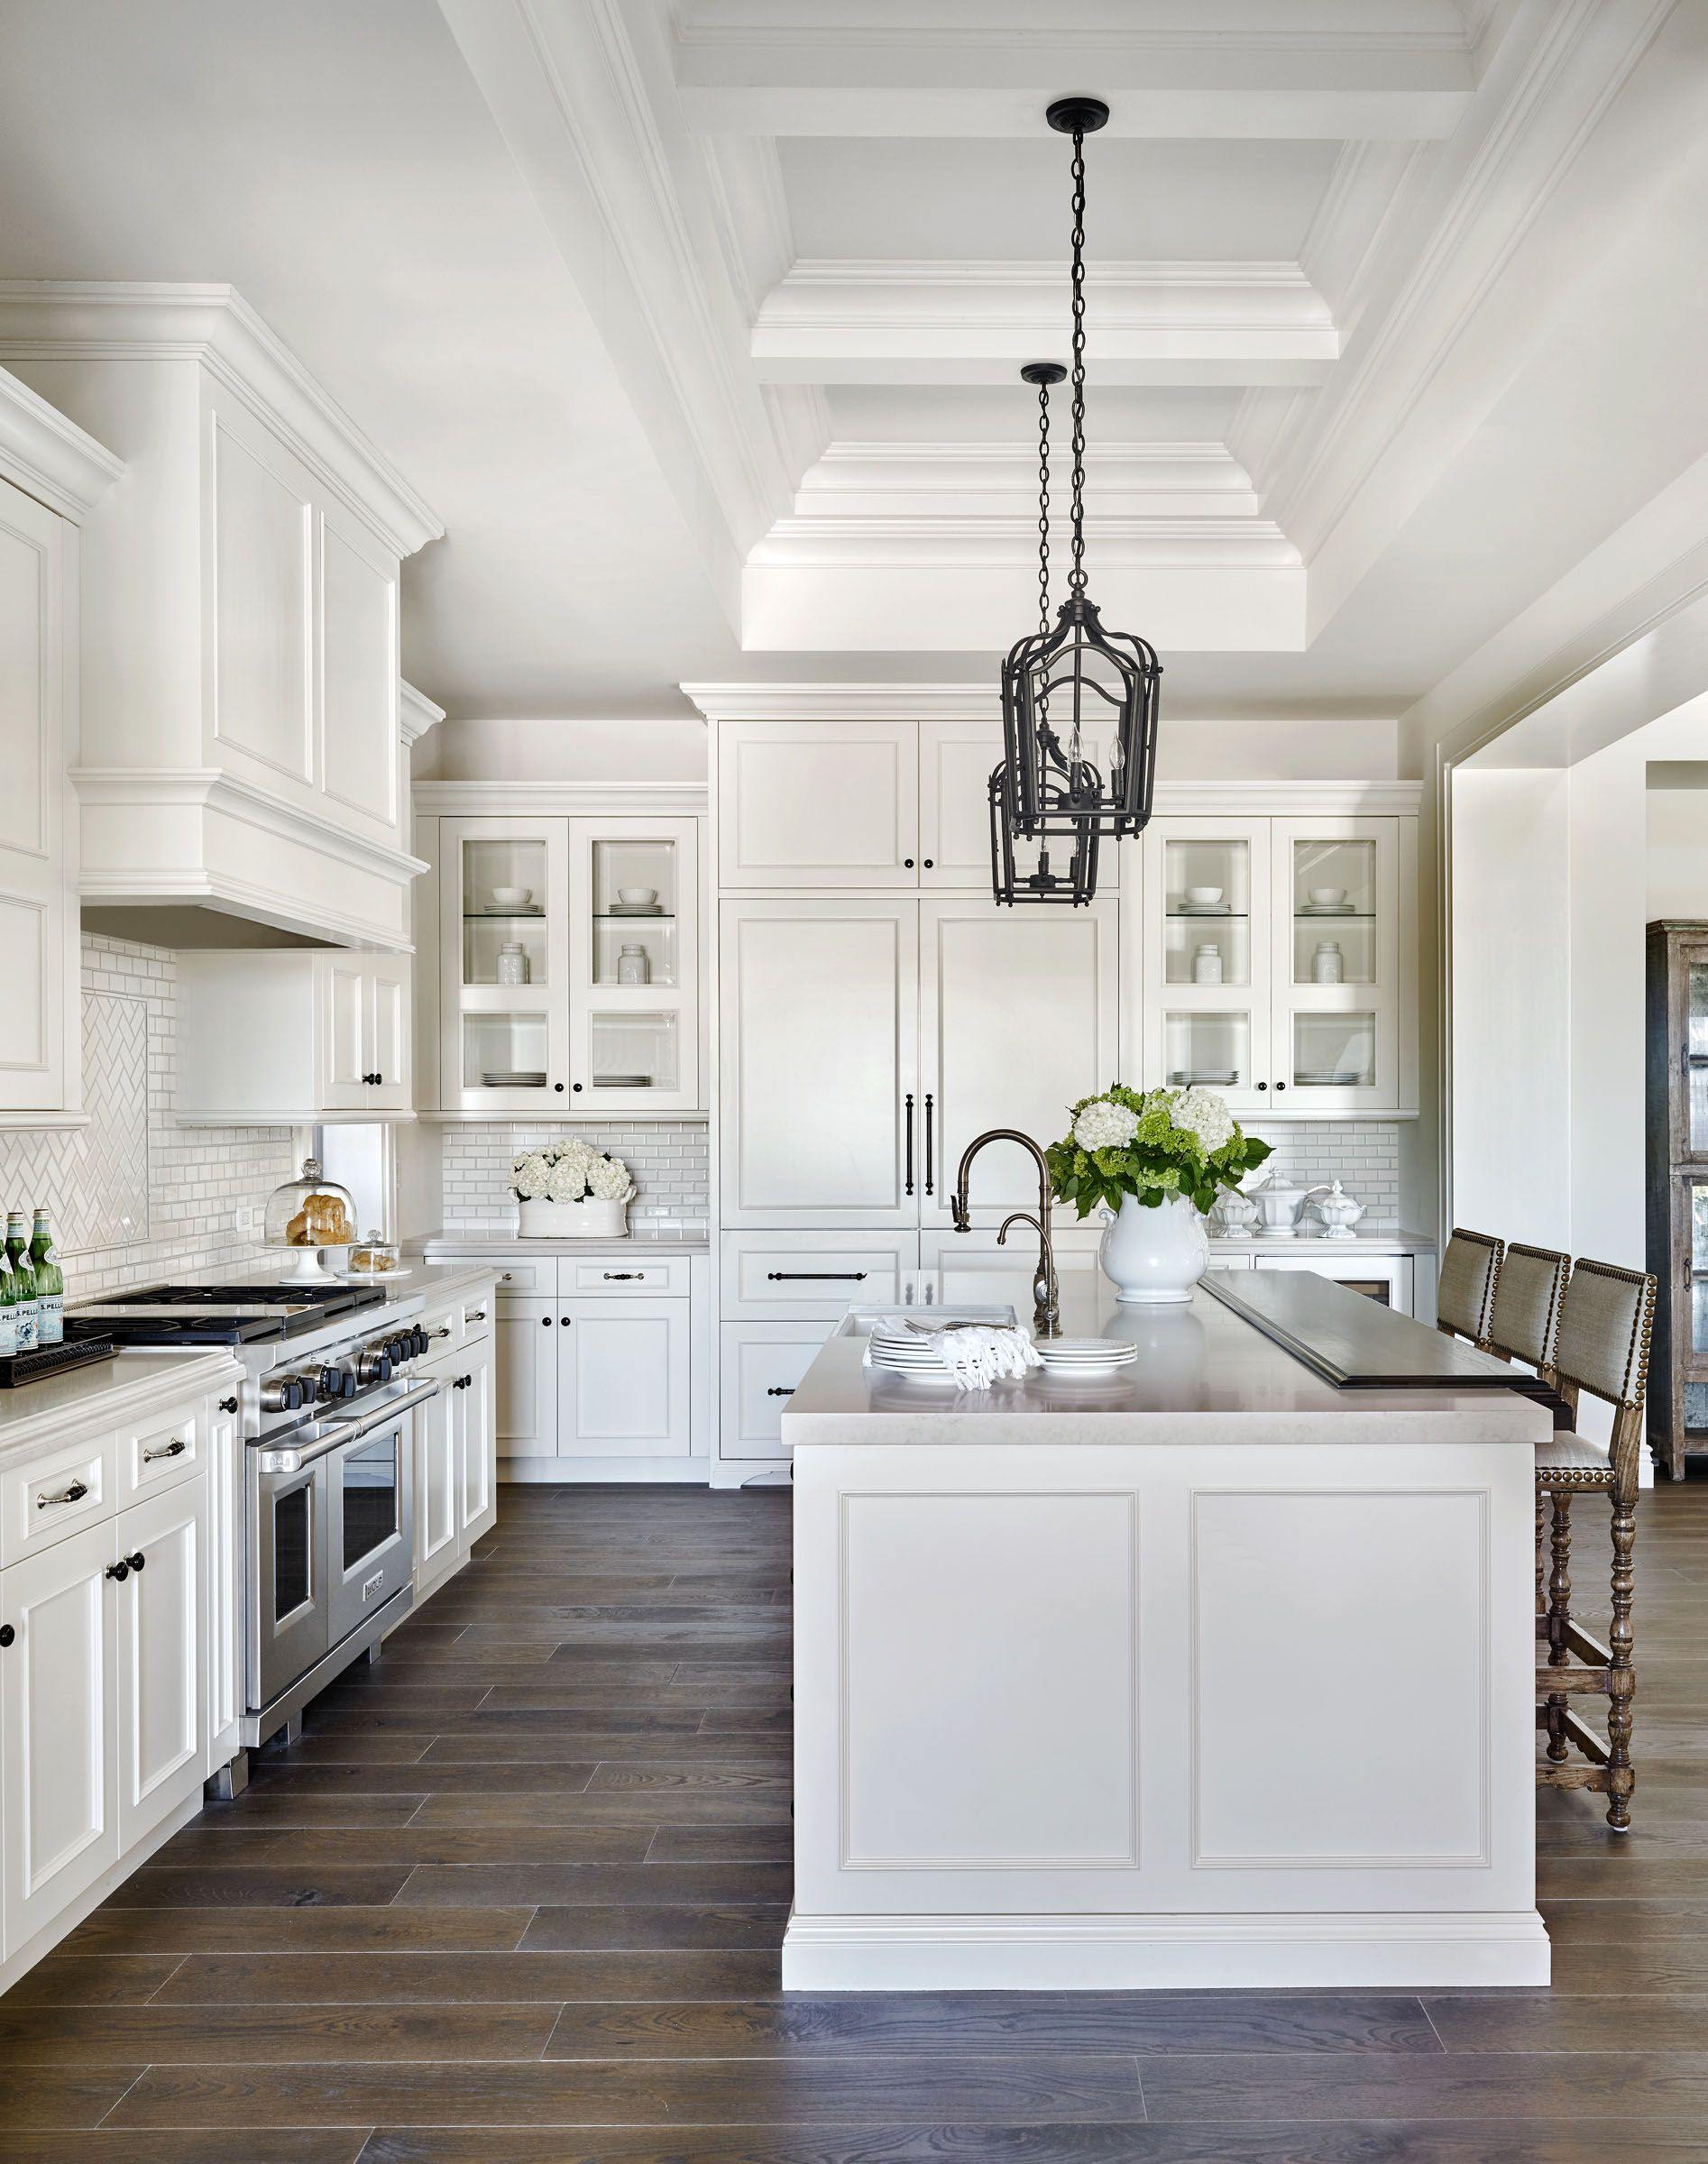 Merveilleux Elegant Kitchen With White Marble And Hardwood Floor | Lisa Lee Hickman